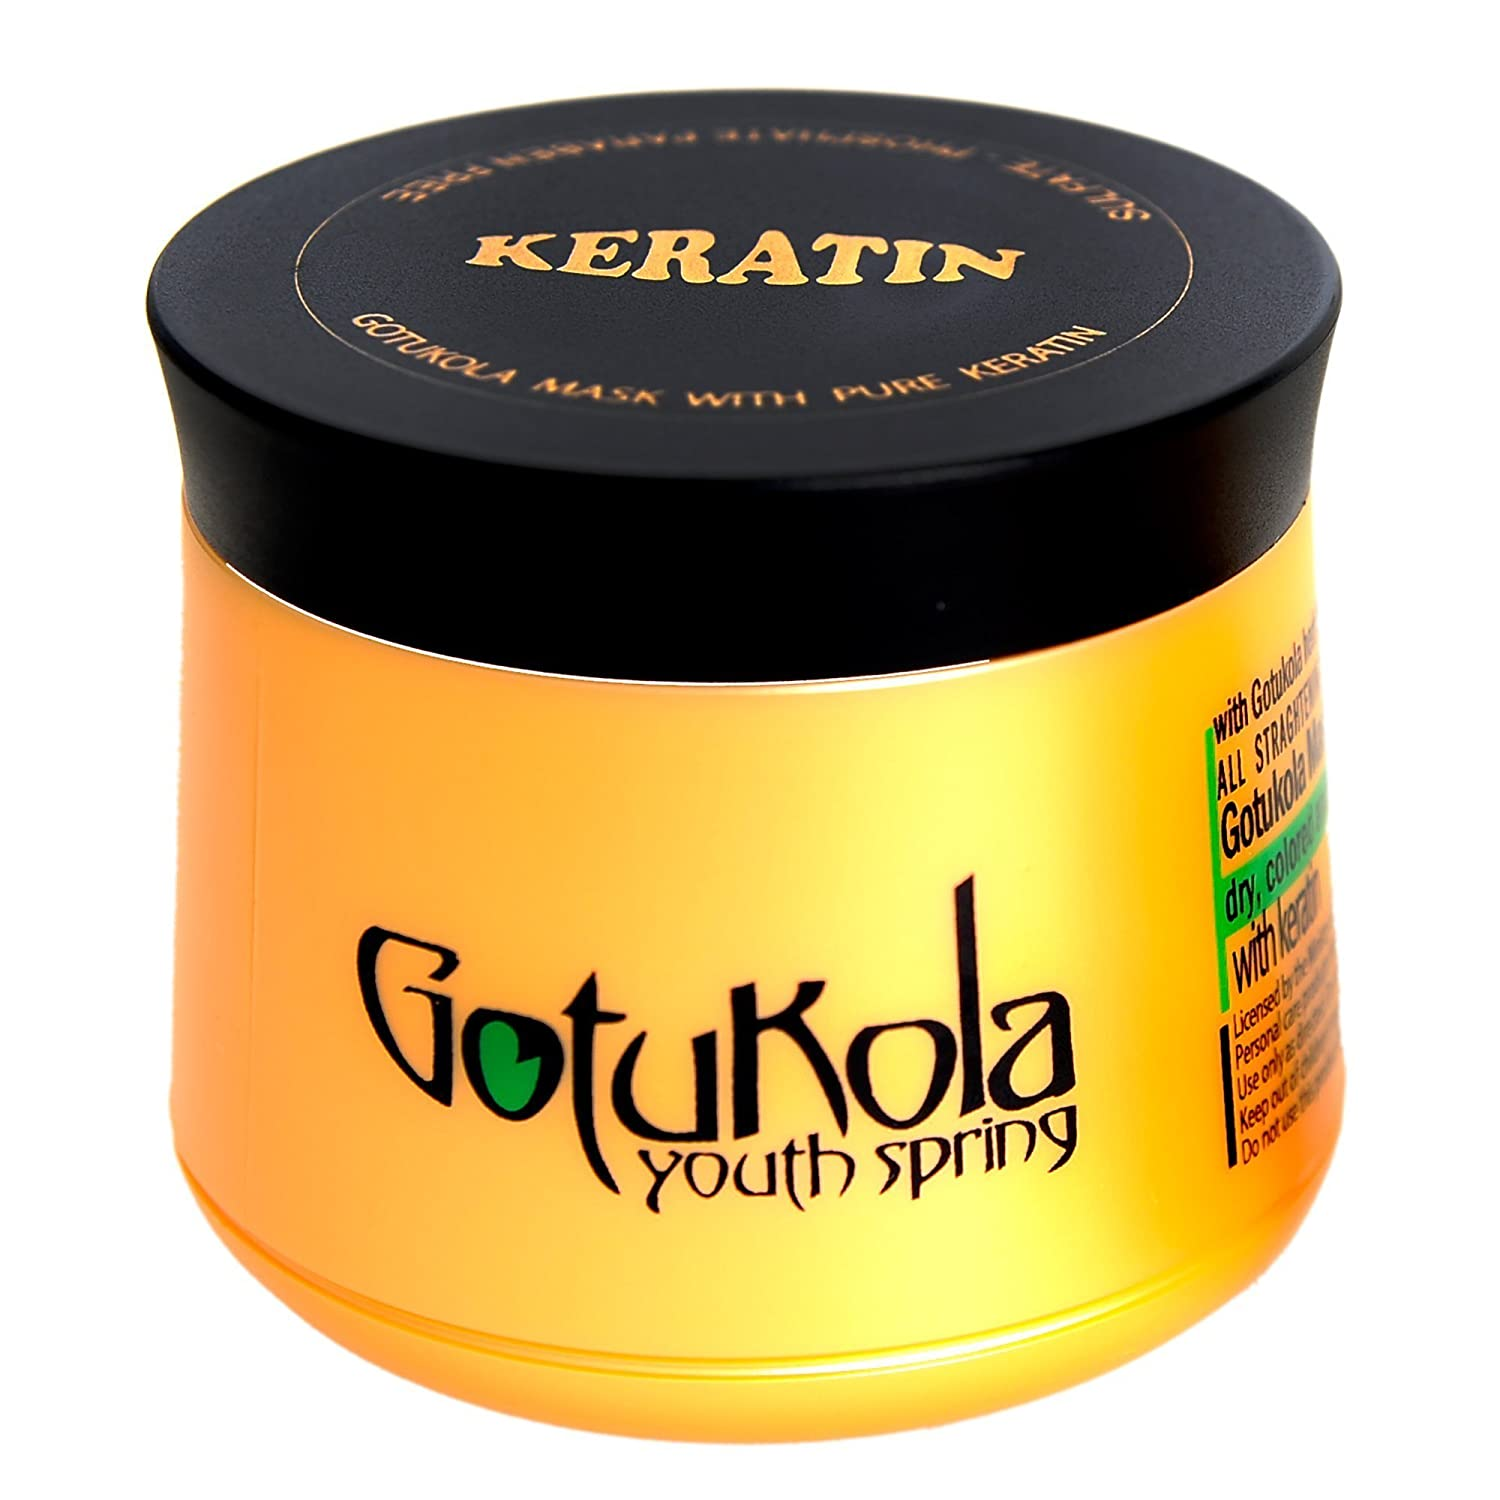 Gotukola Mask with Keratin and Proteins, 500 ml by Gotukola